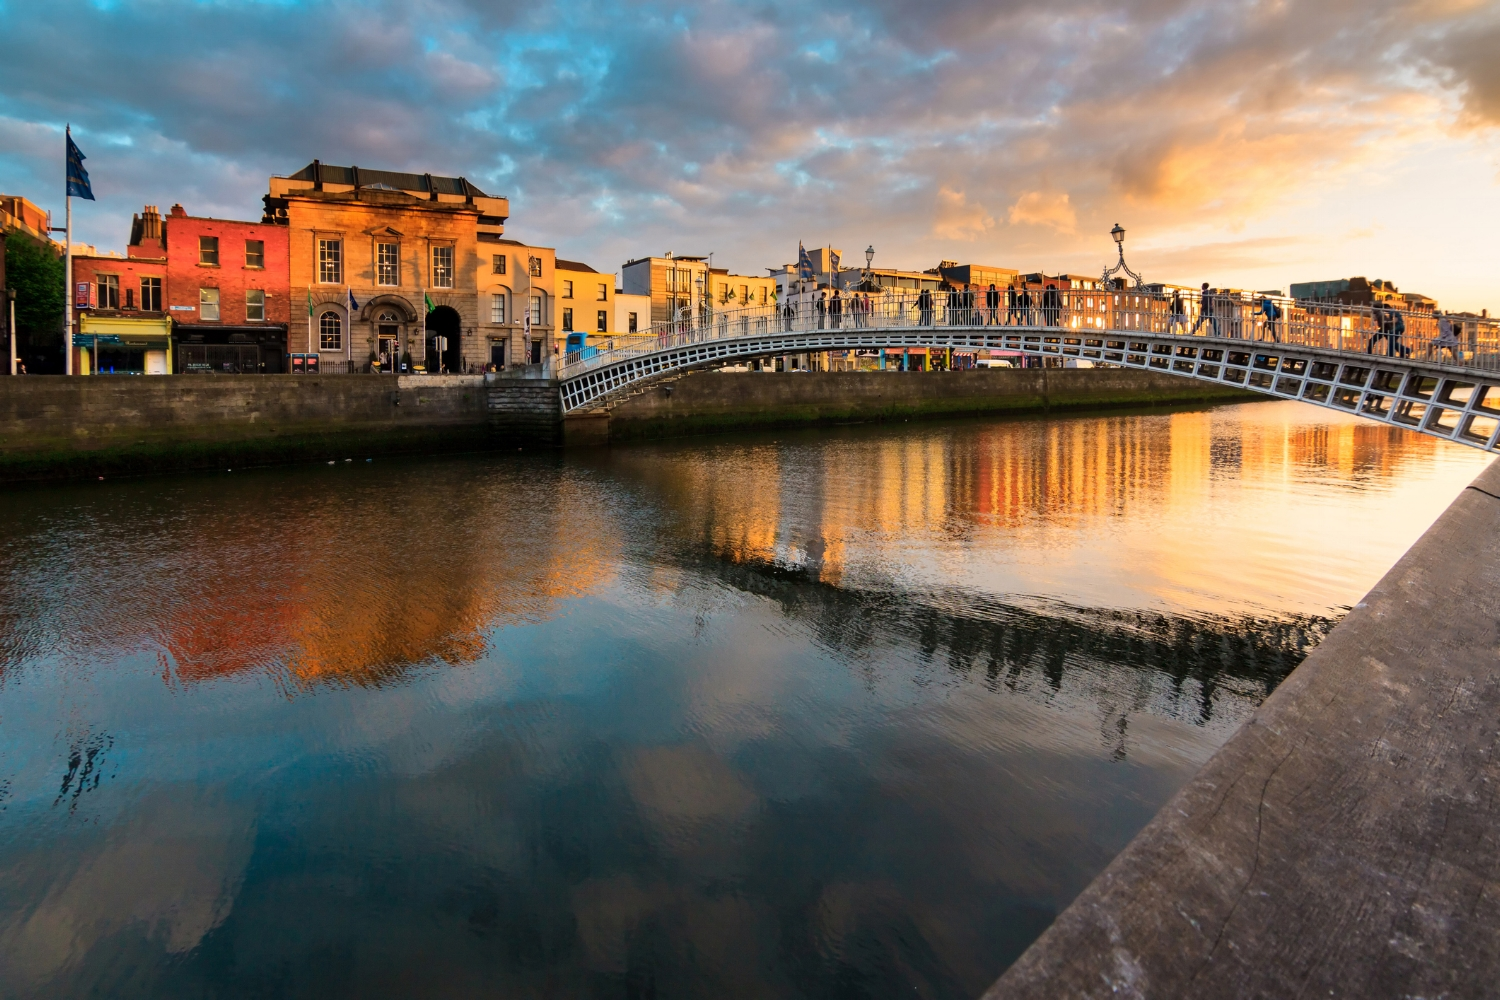 Dublin City - Visit Dublin's famous Christ Church and St. Patricks Cathedral's. View the Book of Kells at Trinity College. Shop on famed Grafton Street. For Museum lovers, head to The National Gallery of Ireland with over 10,000 works of art and the National Museum of Ireland to learn about Ireland through the ages. Sample the popular dry stout from the roof deck of the Guinness Storehouse and whiskey at Jameson Distillery. Head to the popular Temple Bar District for pubs, music and the re-discovered 17th Century Smock Alley theater with a not-to-miss stroll over the Ha' Penny Bridge, especially beautiful at night.